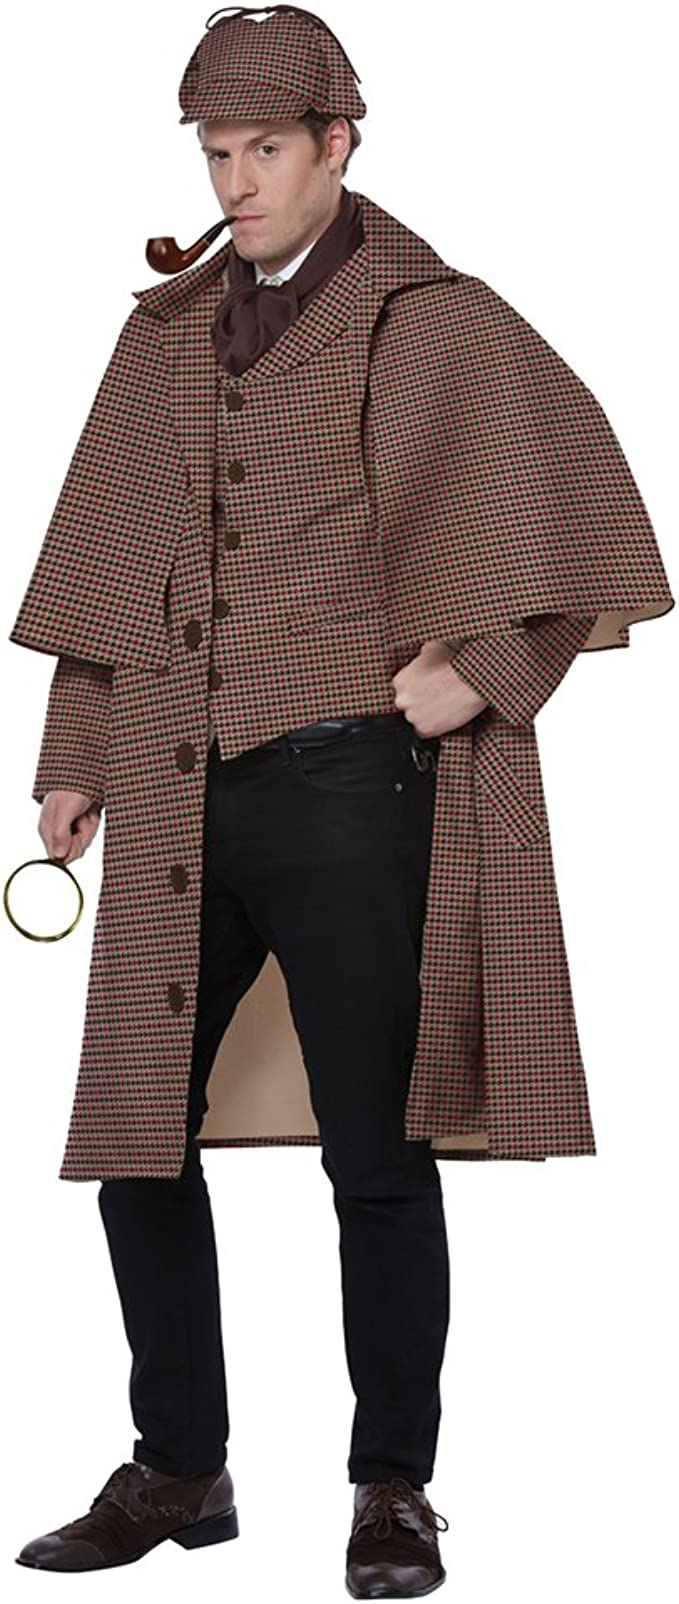 Victorian Men's Costumes: Mad Hatter, Rhet Butler, Willy Wonka California Costumes Mens English Detective/Sherlock Holmes Costume $69.99 AT vintagedancer.com